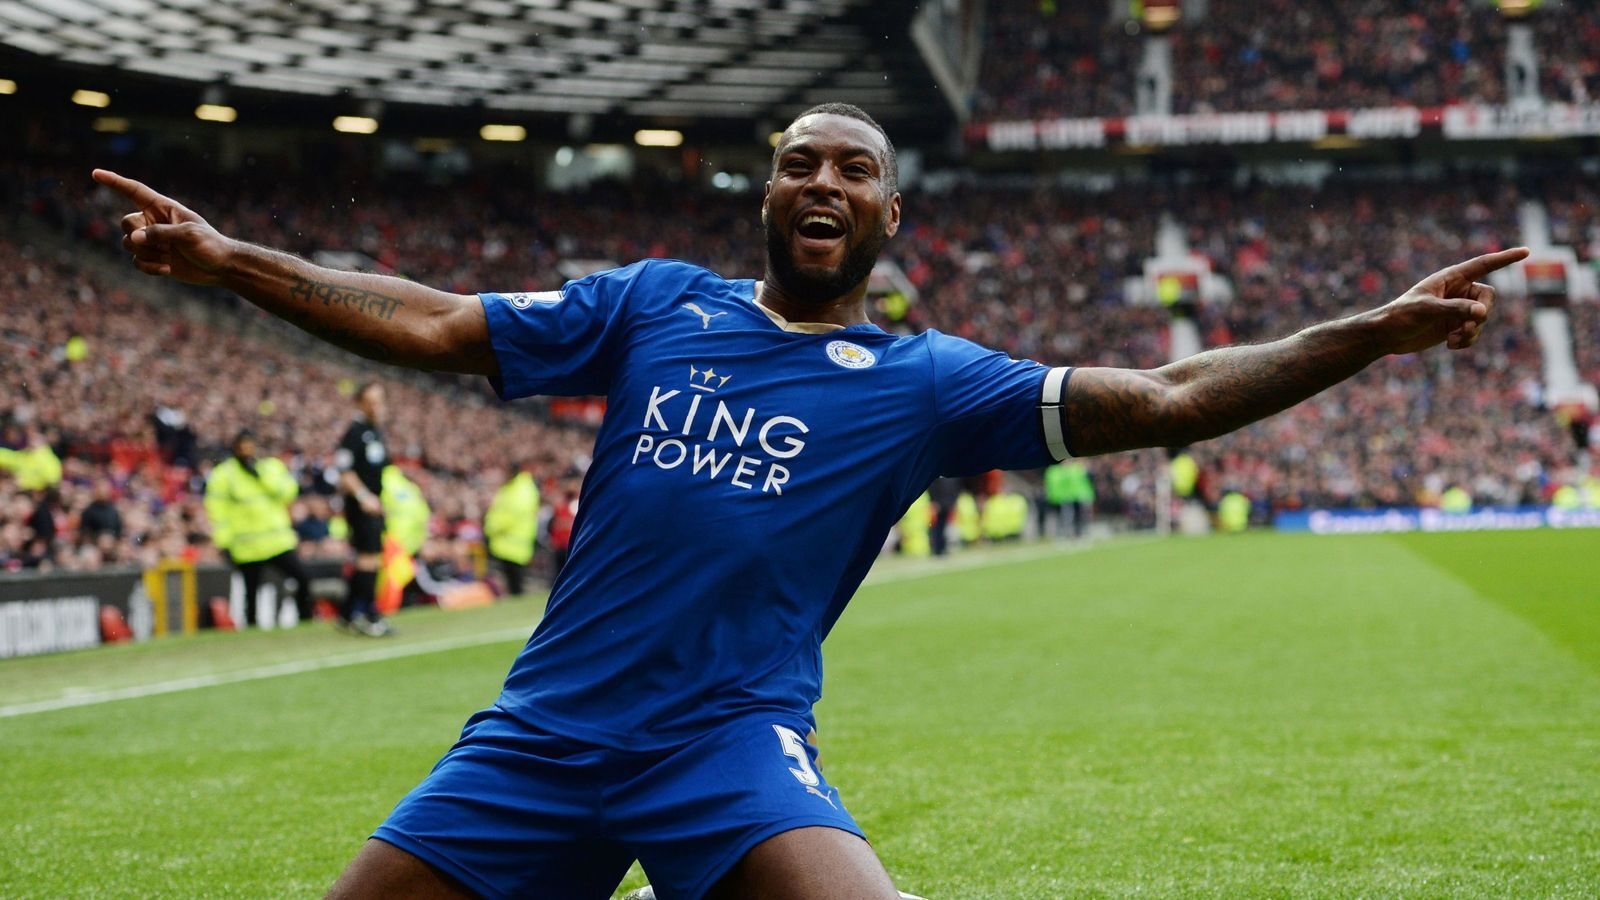 Wes Morgan To Retire at the end of the season